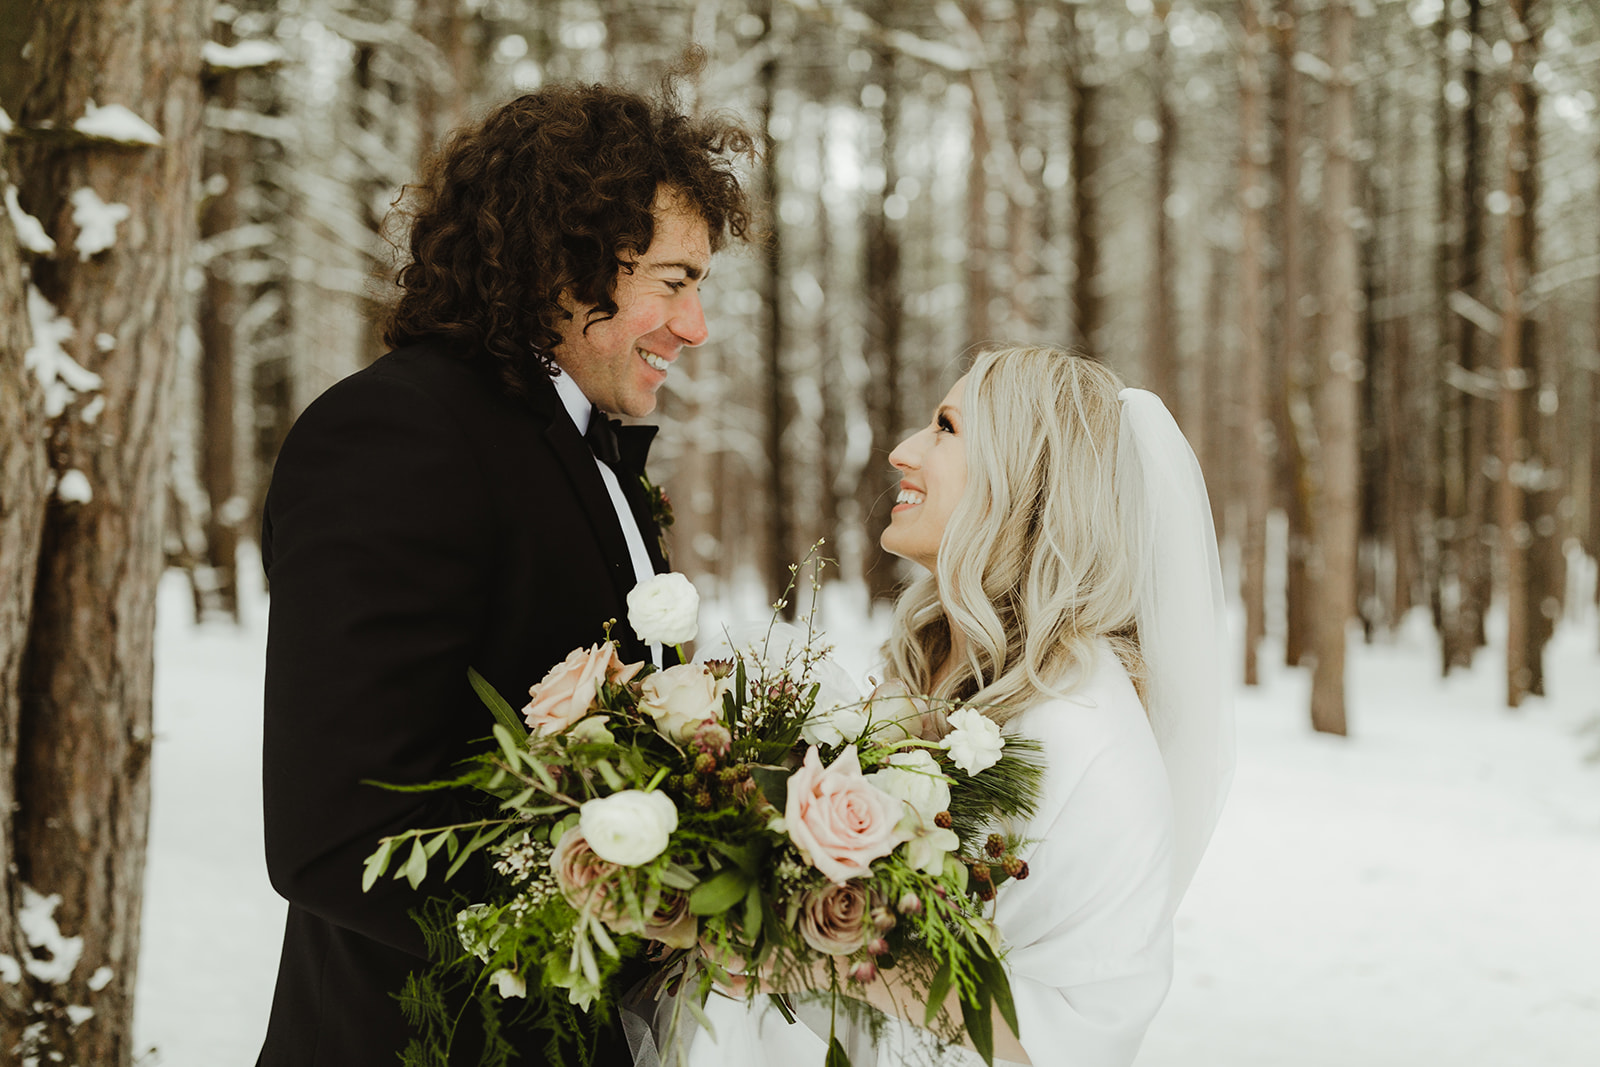 A bride and groom smiling in the snow after their Grand Rapids, Michigan wedding